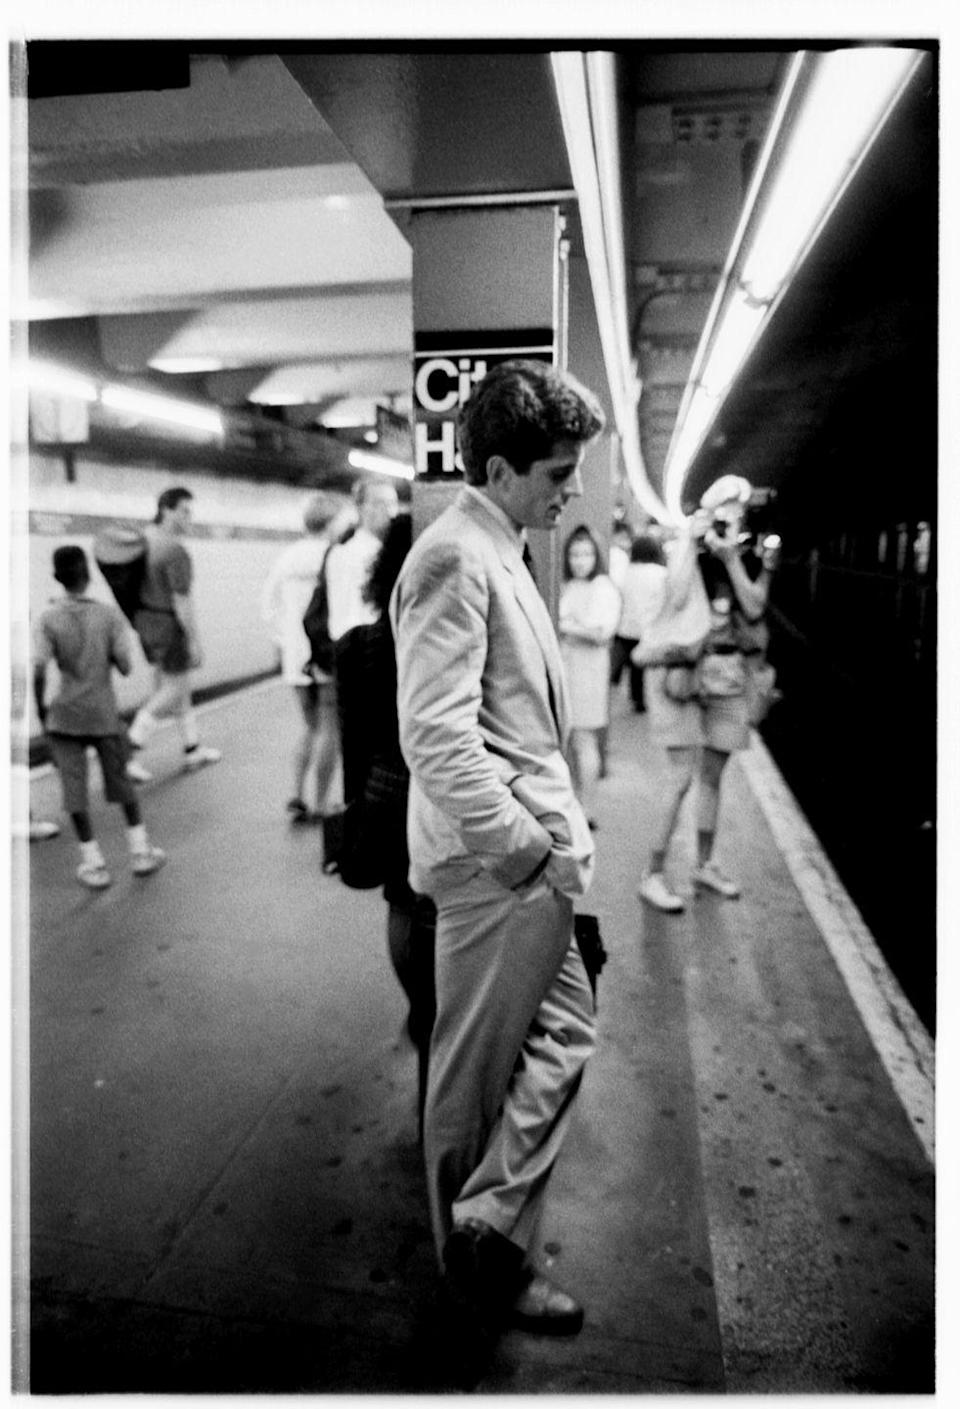 <p>John Kennedy Jr. waiting for the train at City Hall station on his first day as Assistant District Attorney. </p>